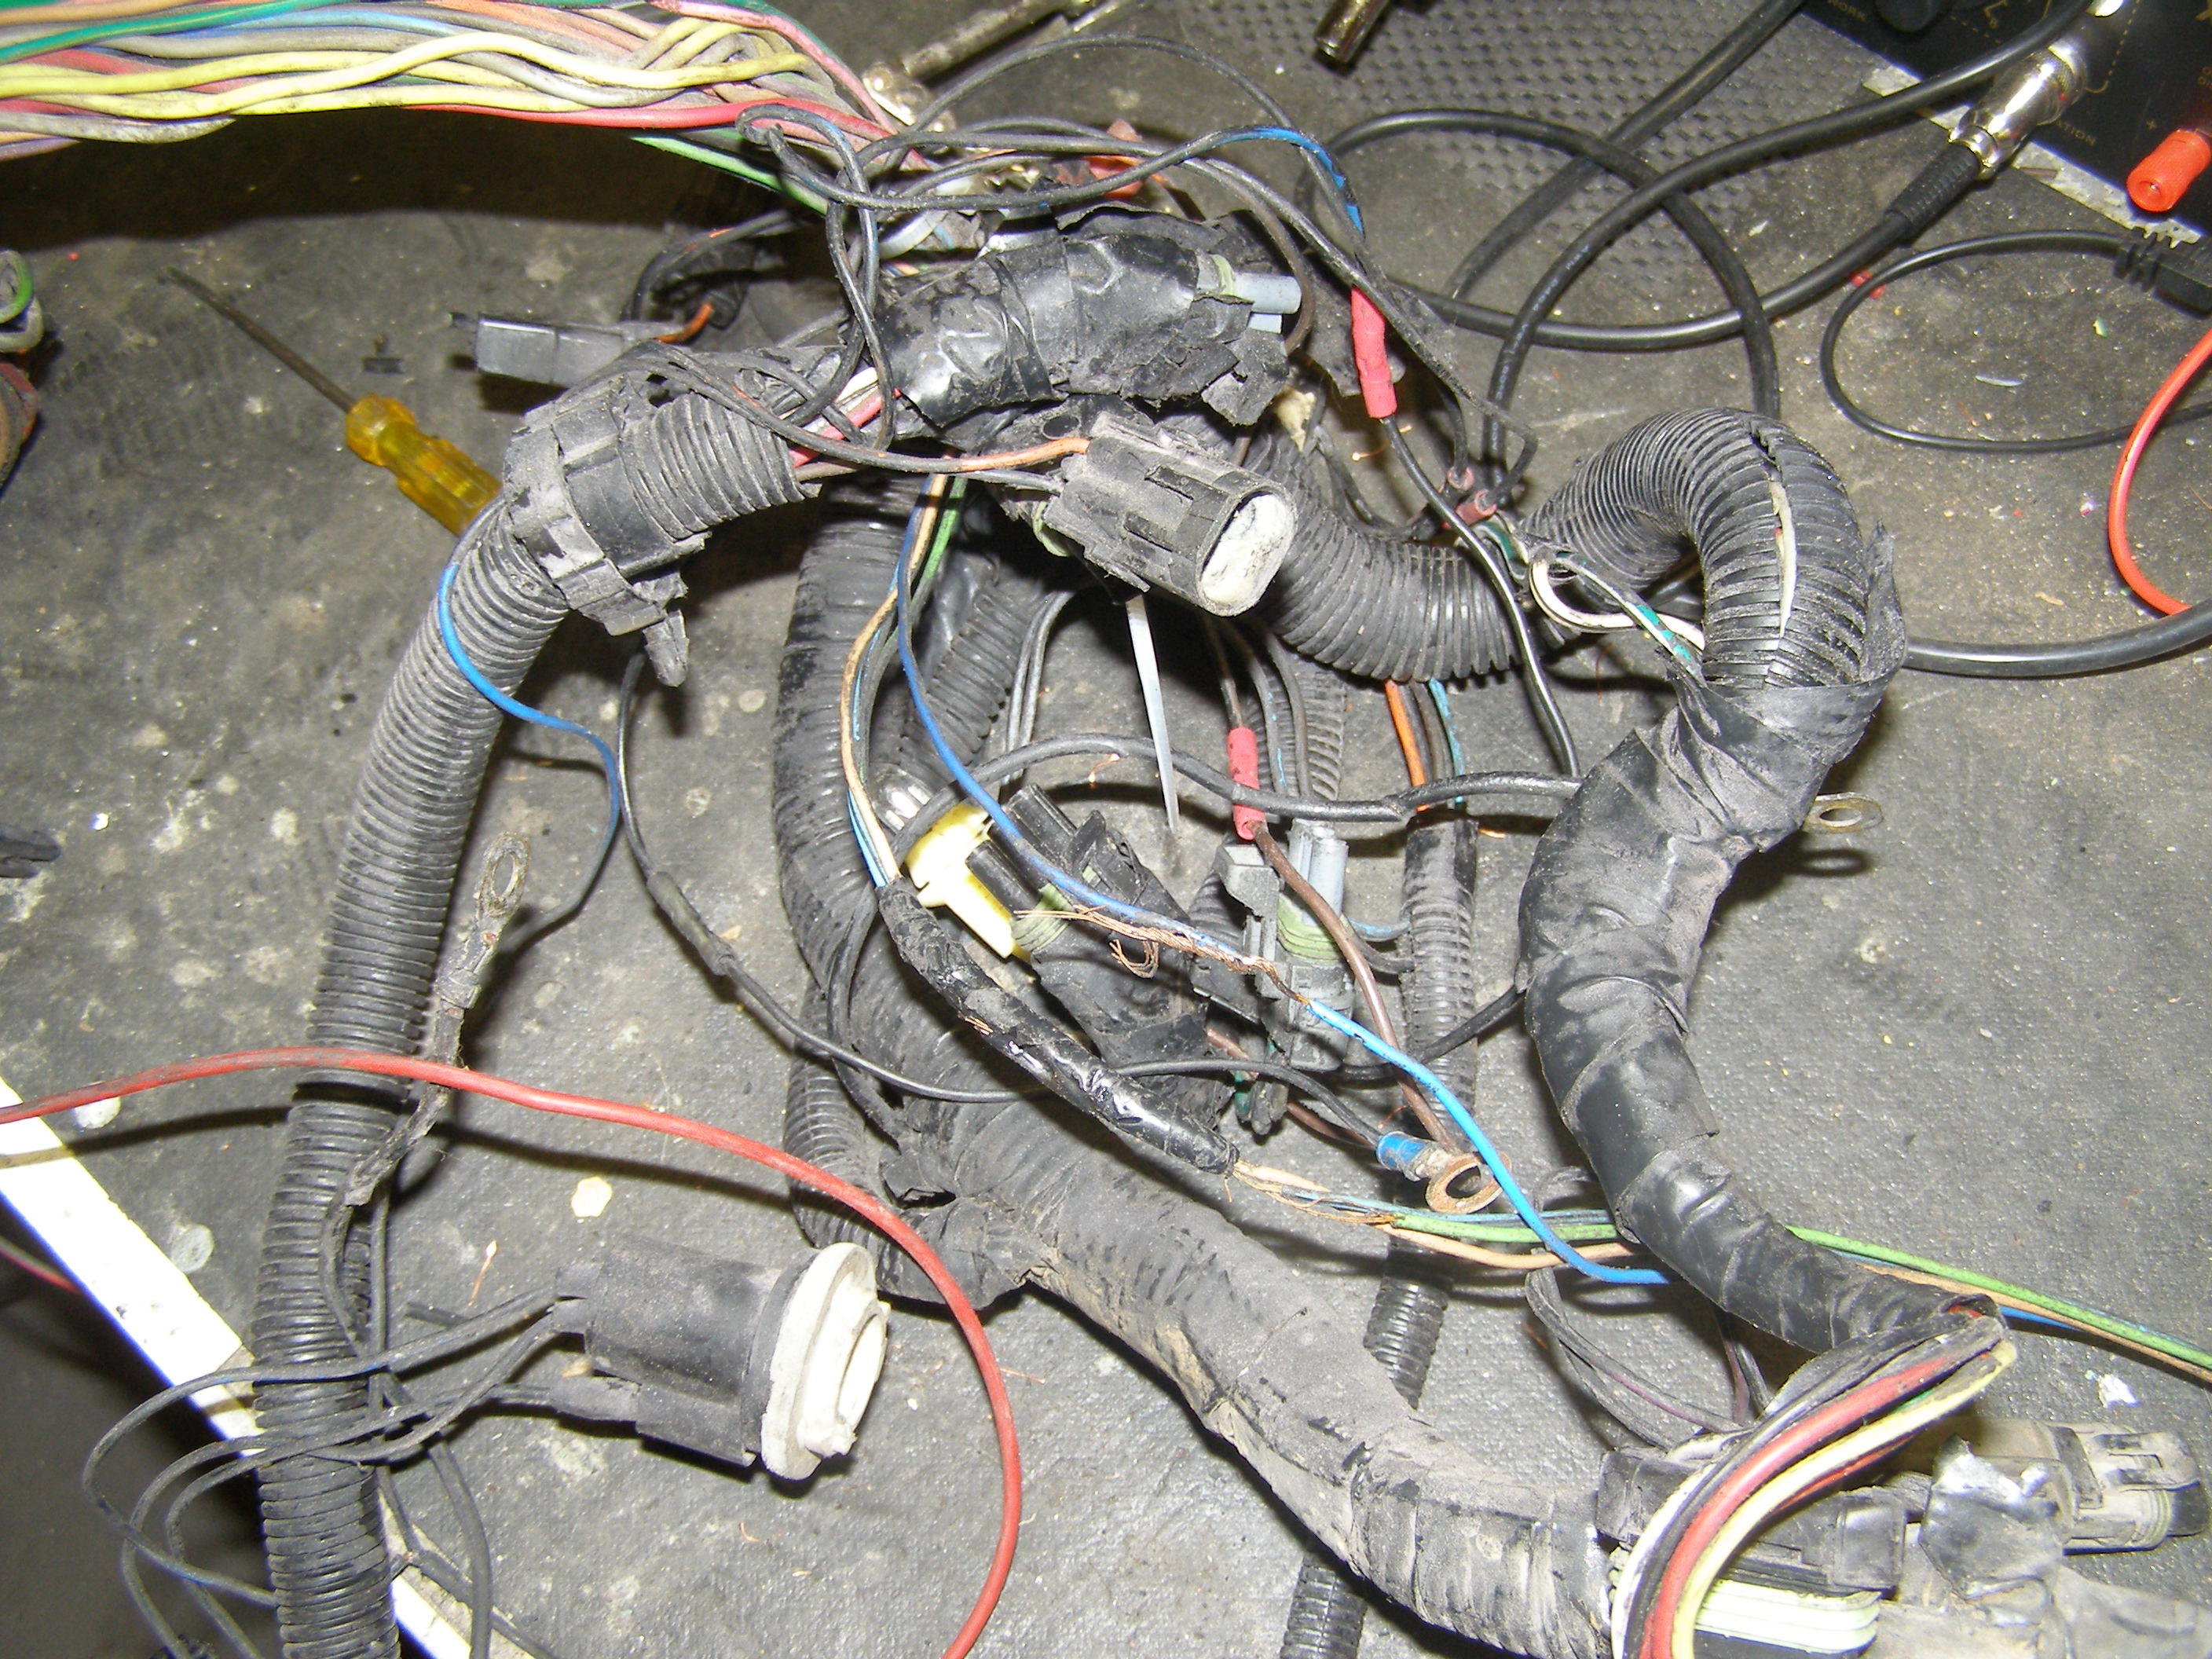 Wiring Harness Restoration Repair Rebuilding Customizing Overhaul Early Fuel Injected Bad Splices